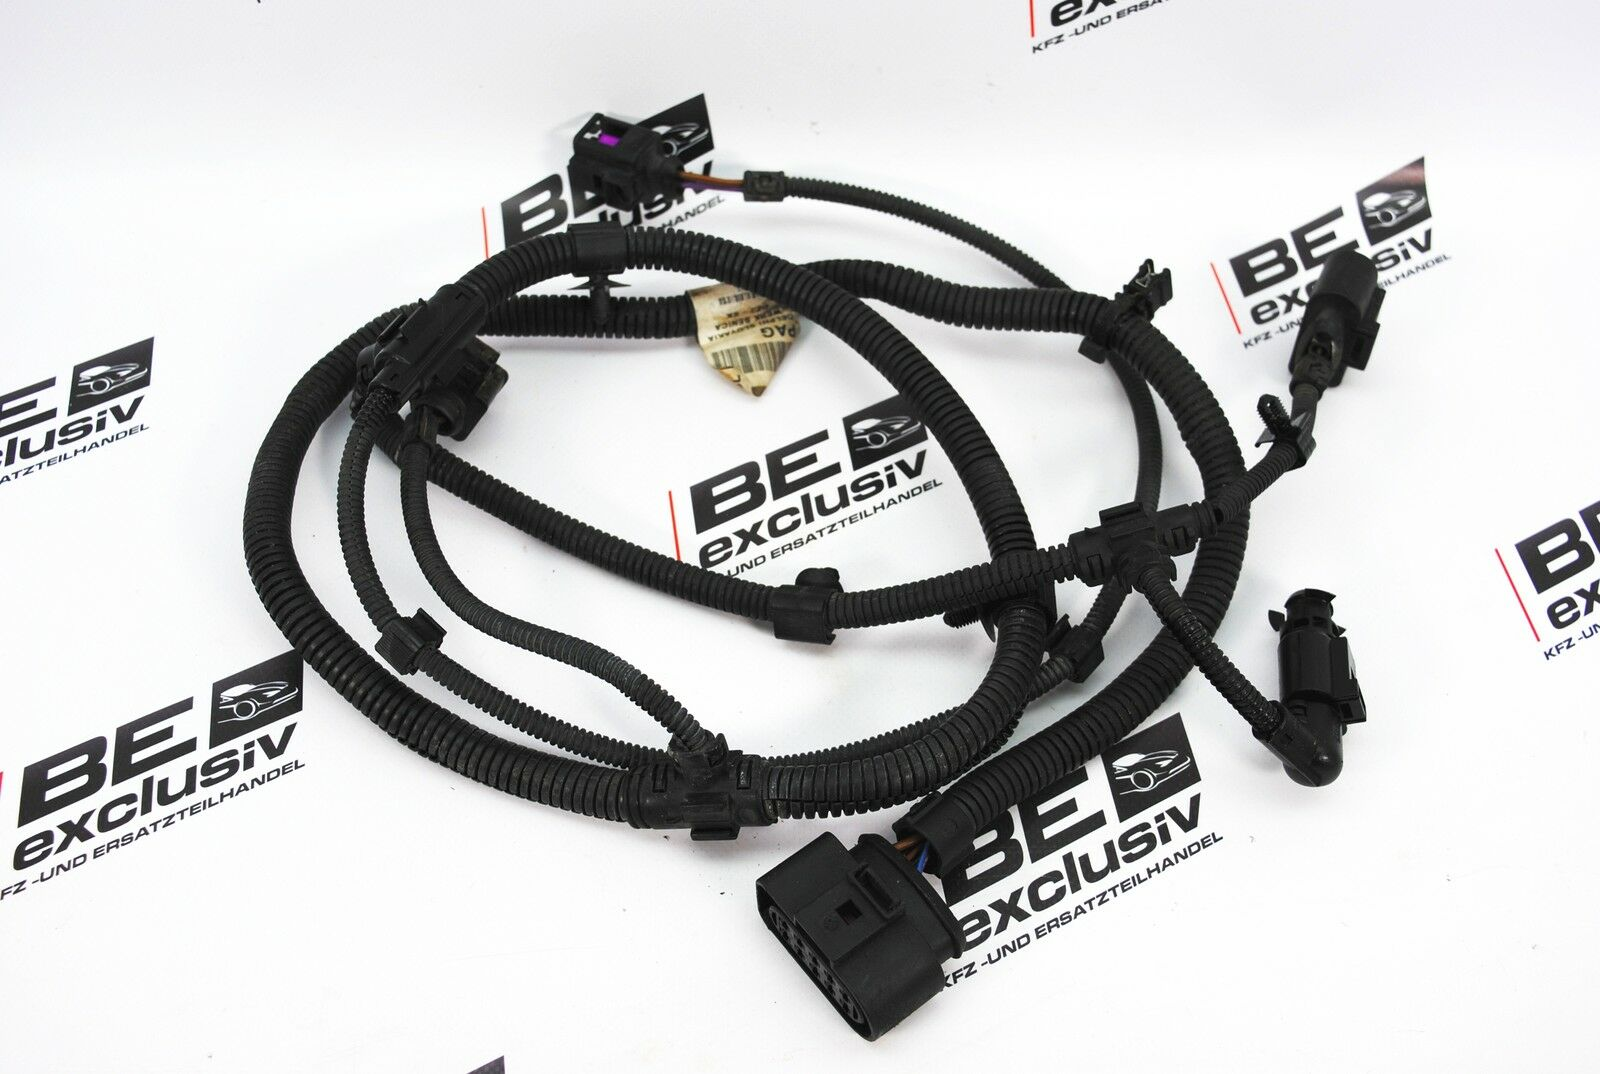 Orig Porsche Cayenne Turbo 955 Wiring Harness Cable Set Slam Panel 7l5971073l 1 Of 3only Available